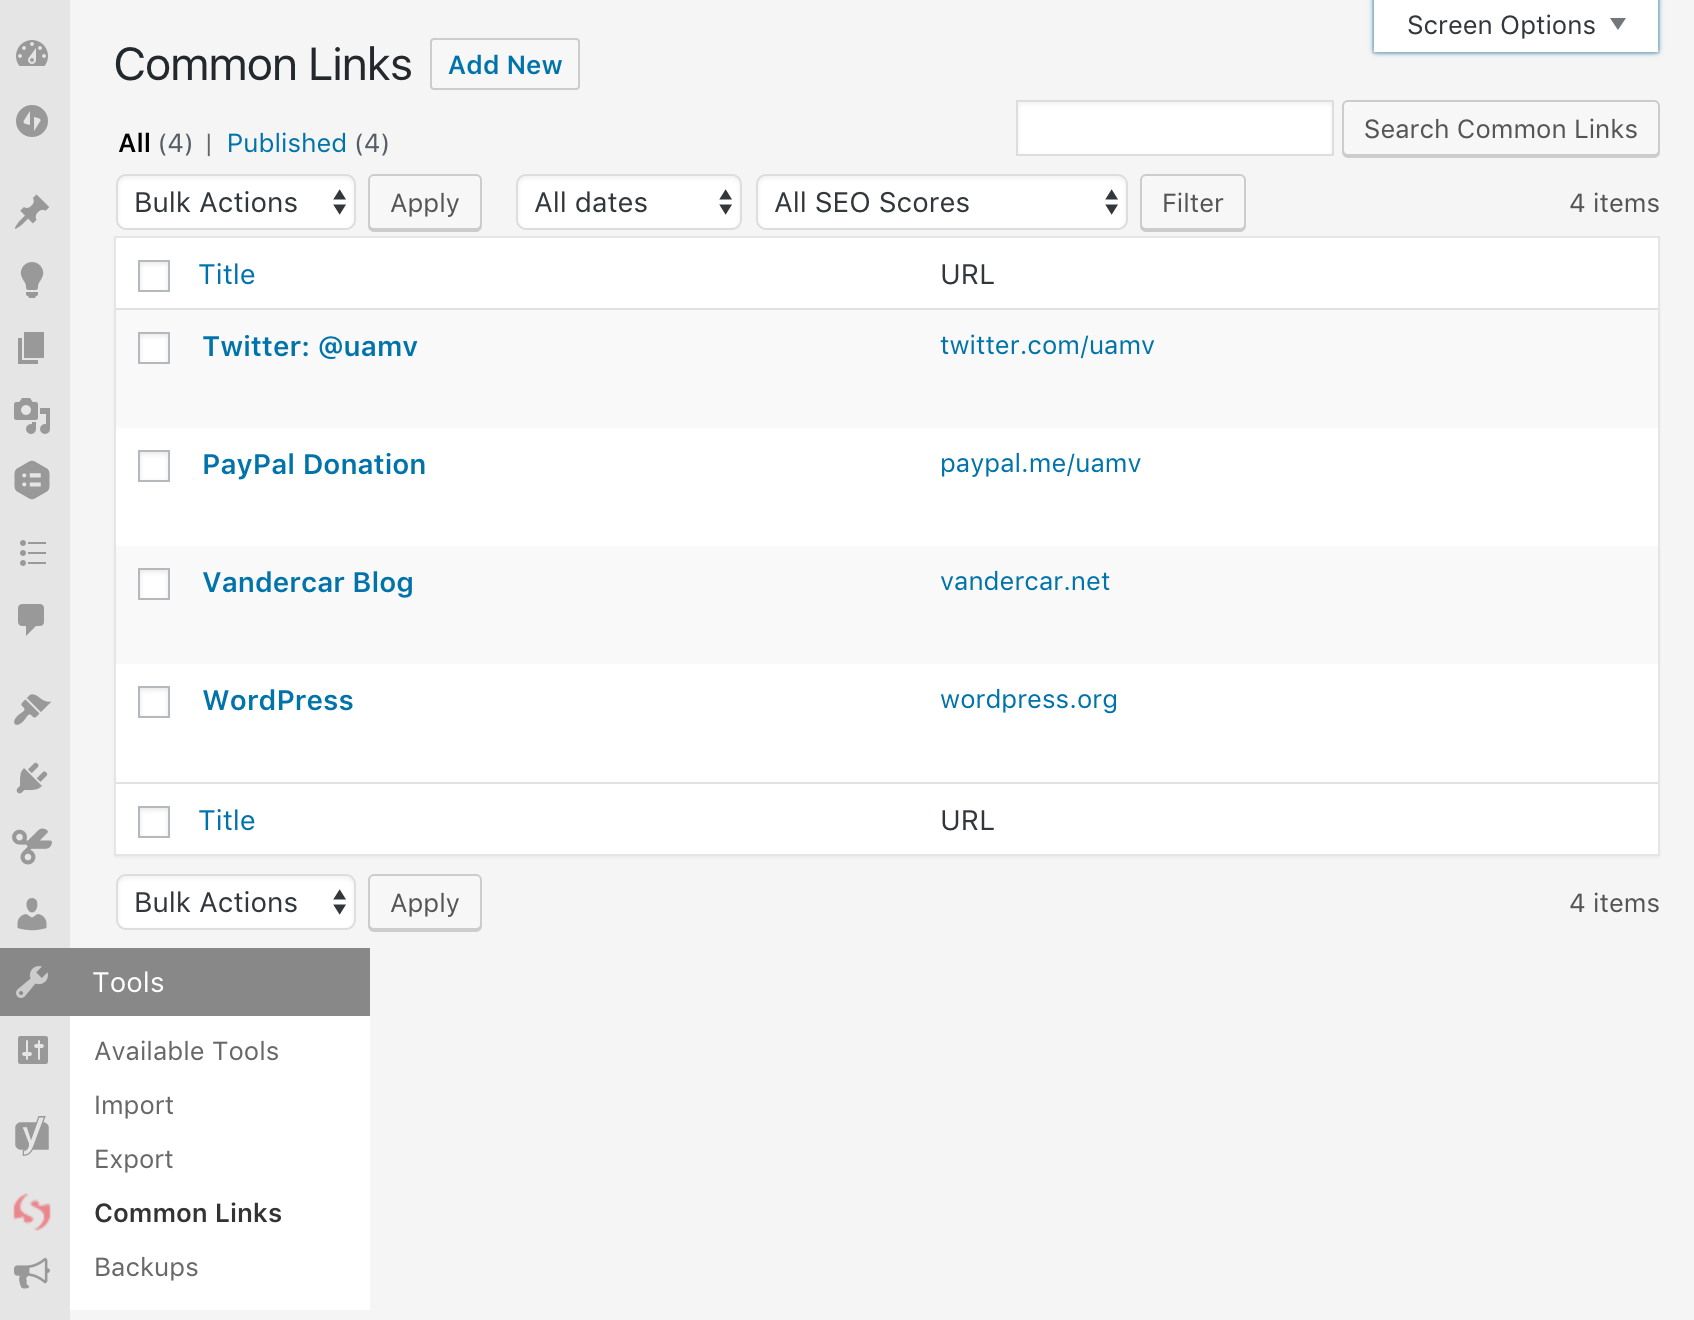 common-links screenshot 2